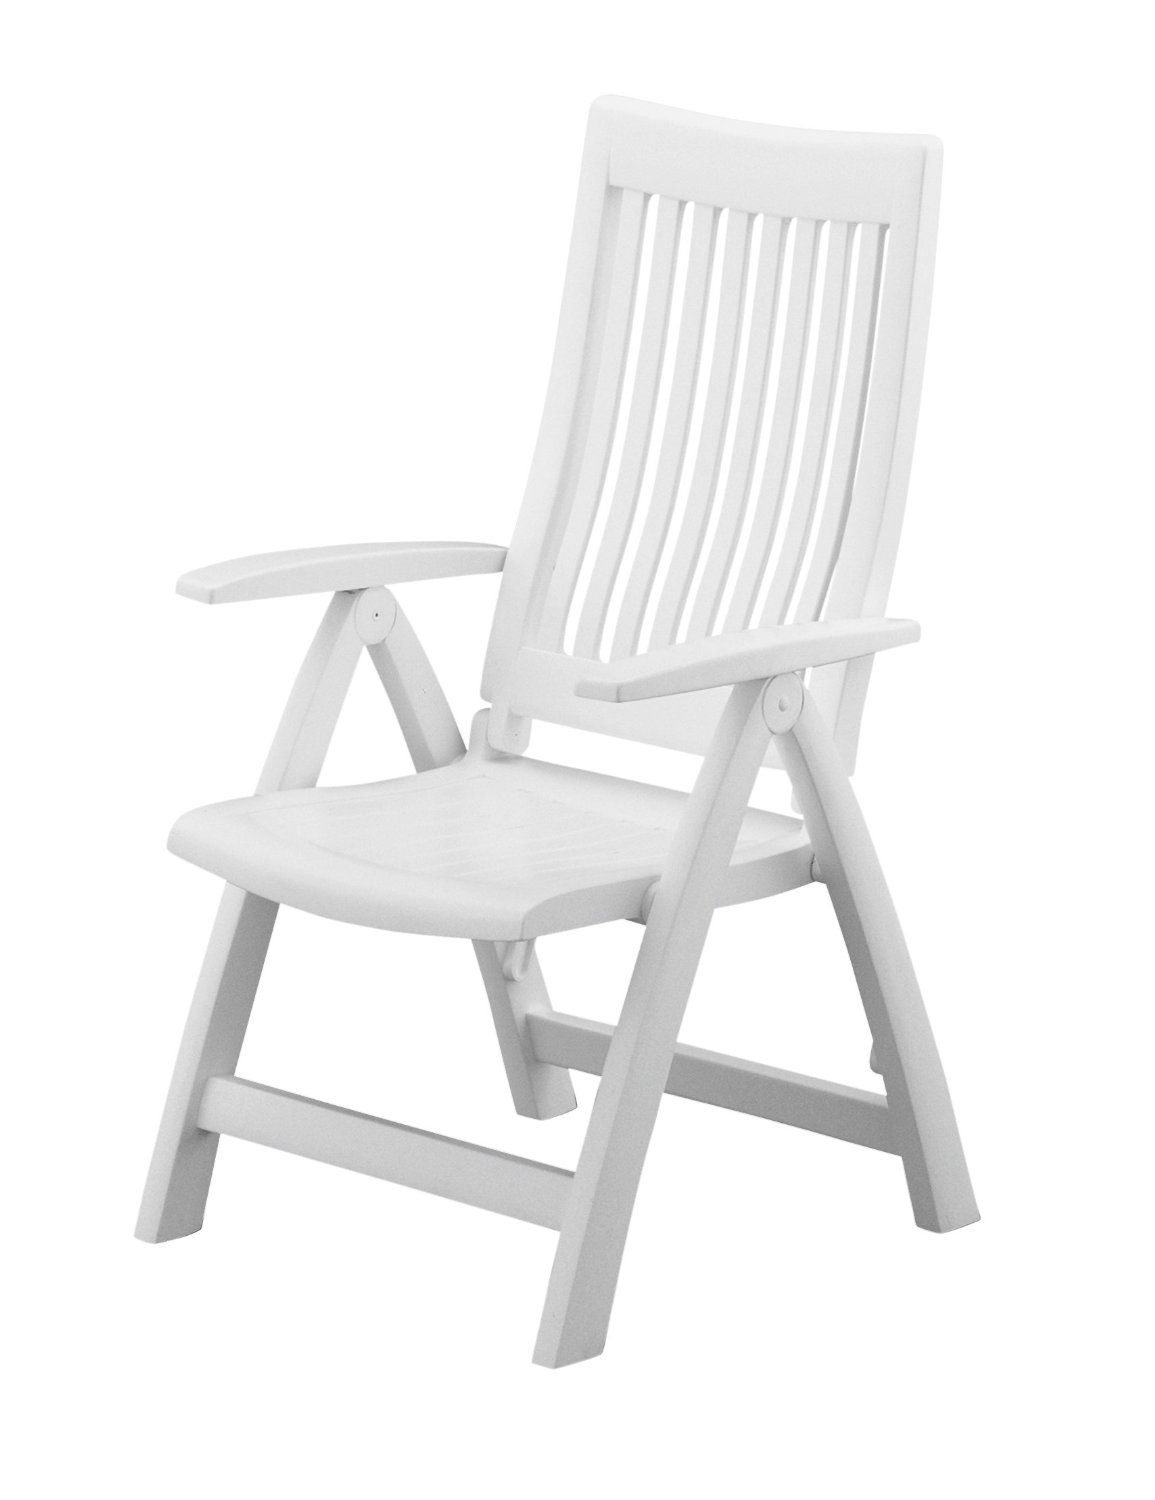 Kettler - 1438-000 - Roma Highback Chair Reclining Patio Chair - White - Standard